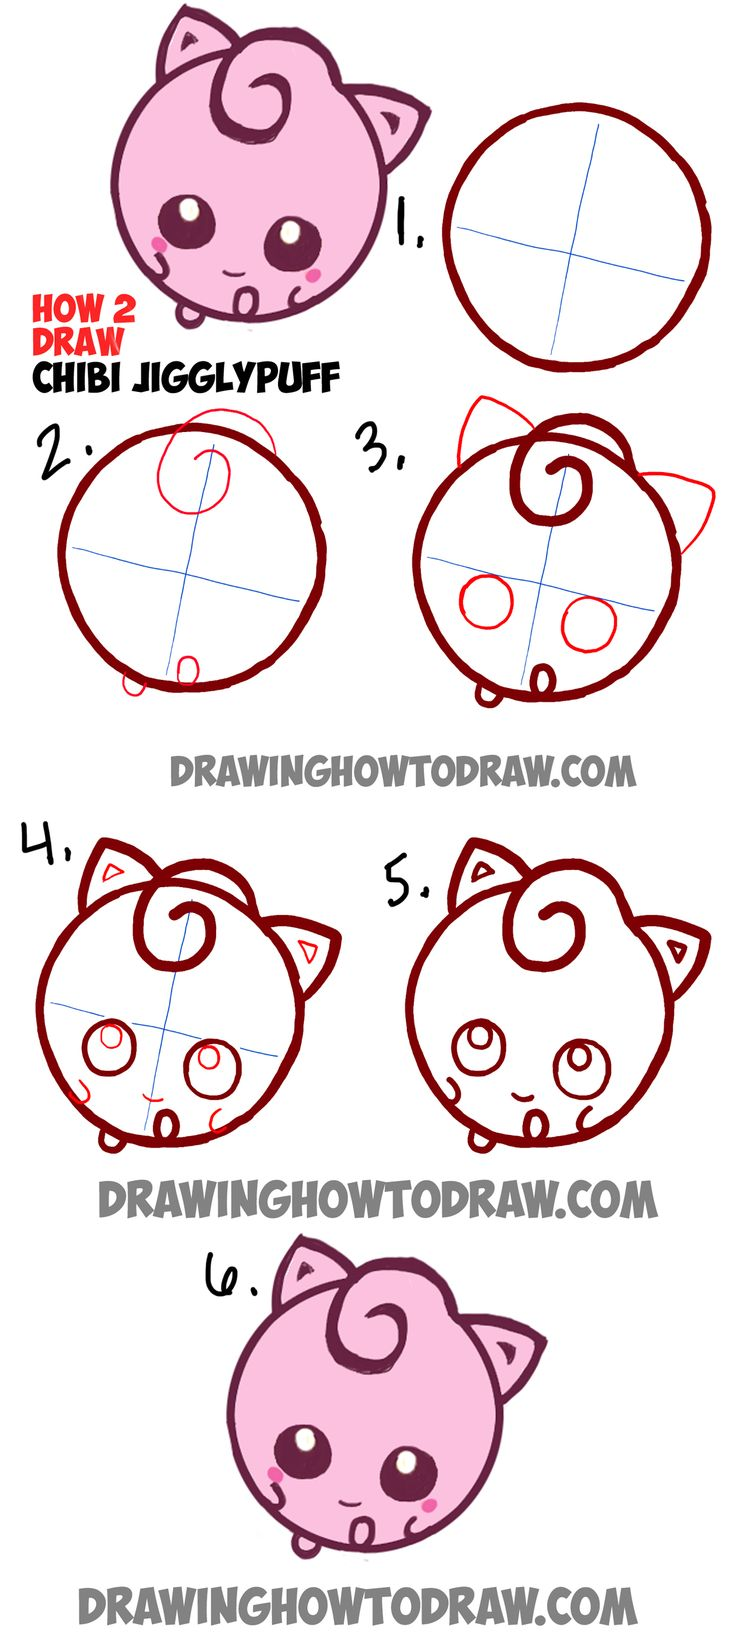 Learn How to Draw Cute Baby Chibi JigglyPuff from Pokemon in Simple Step by Step…